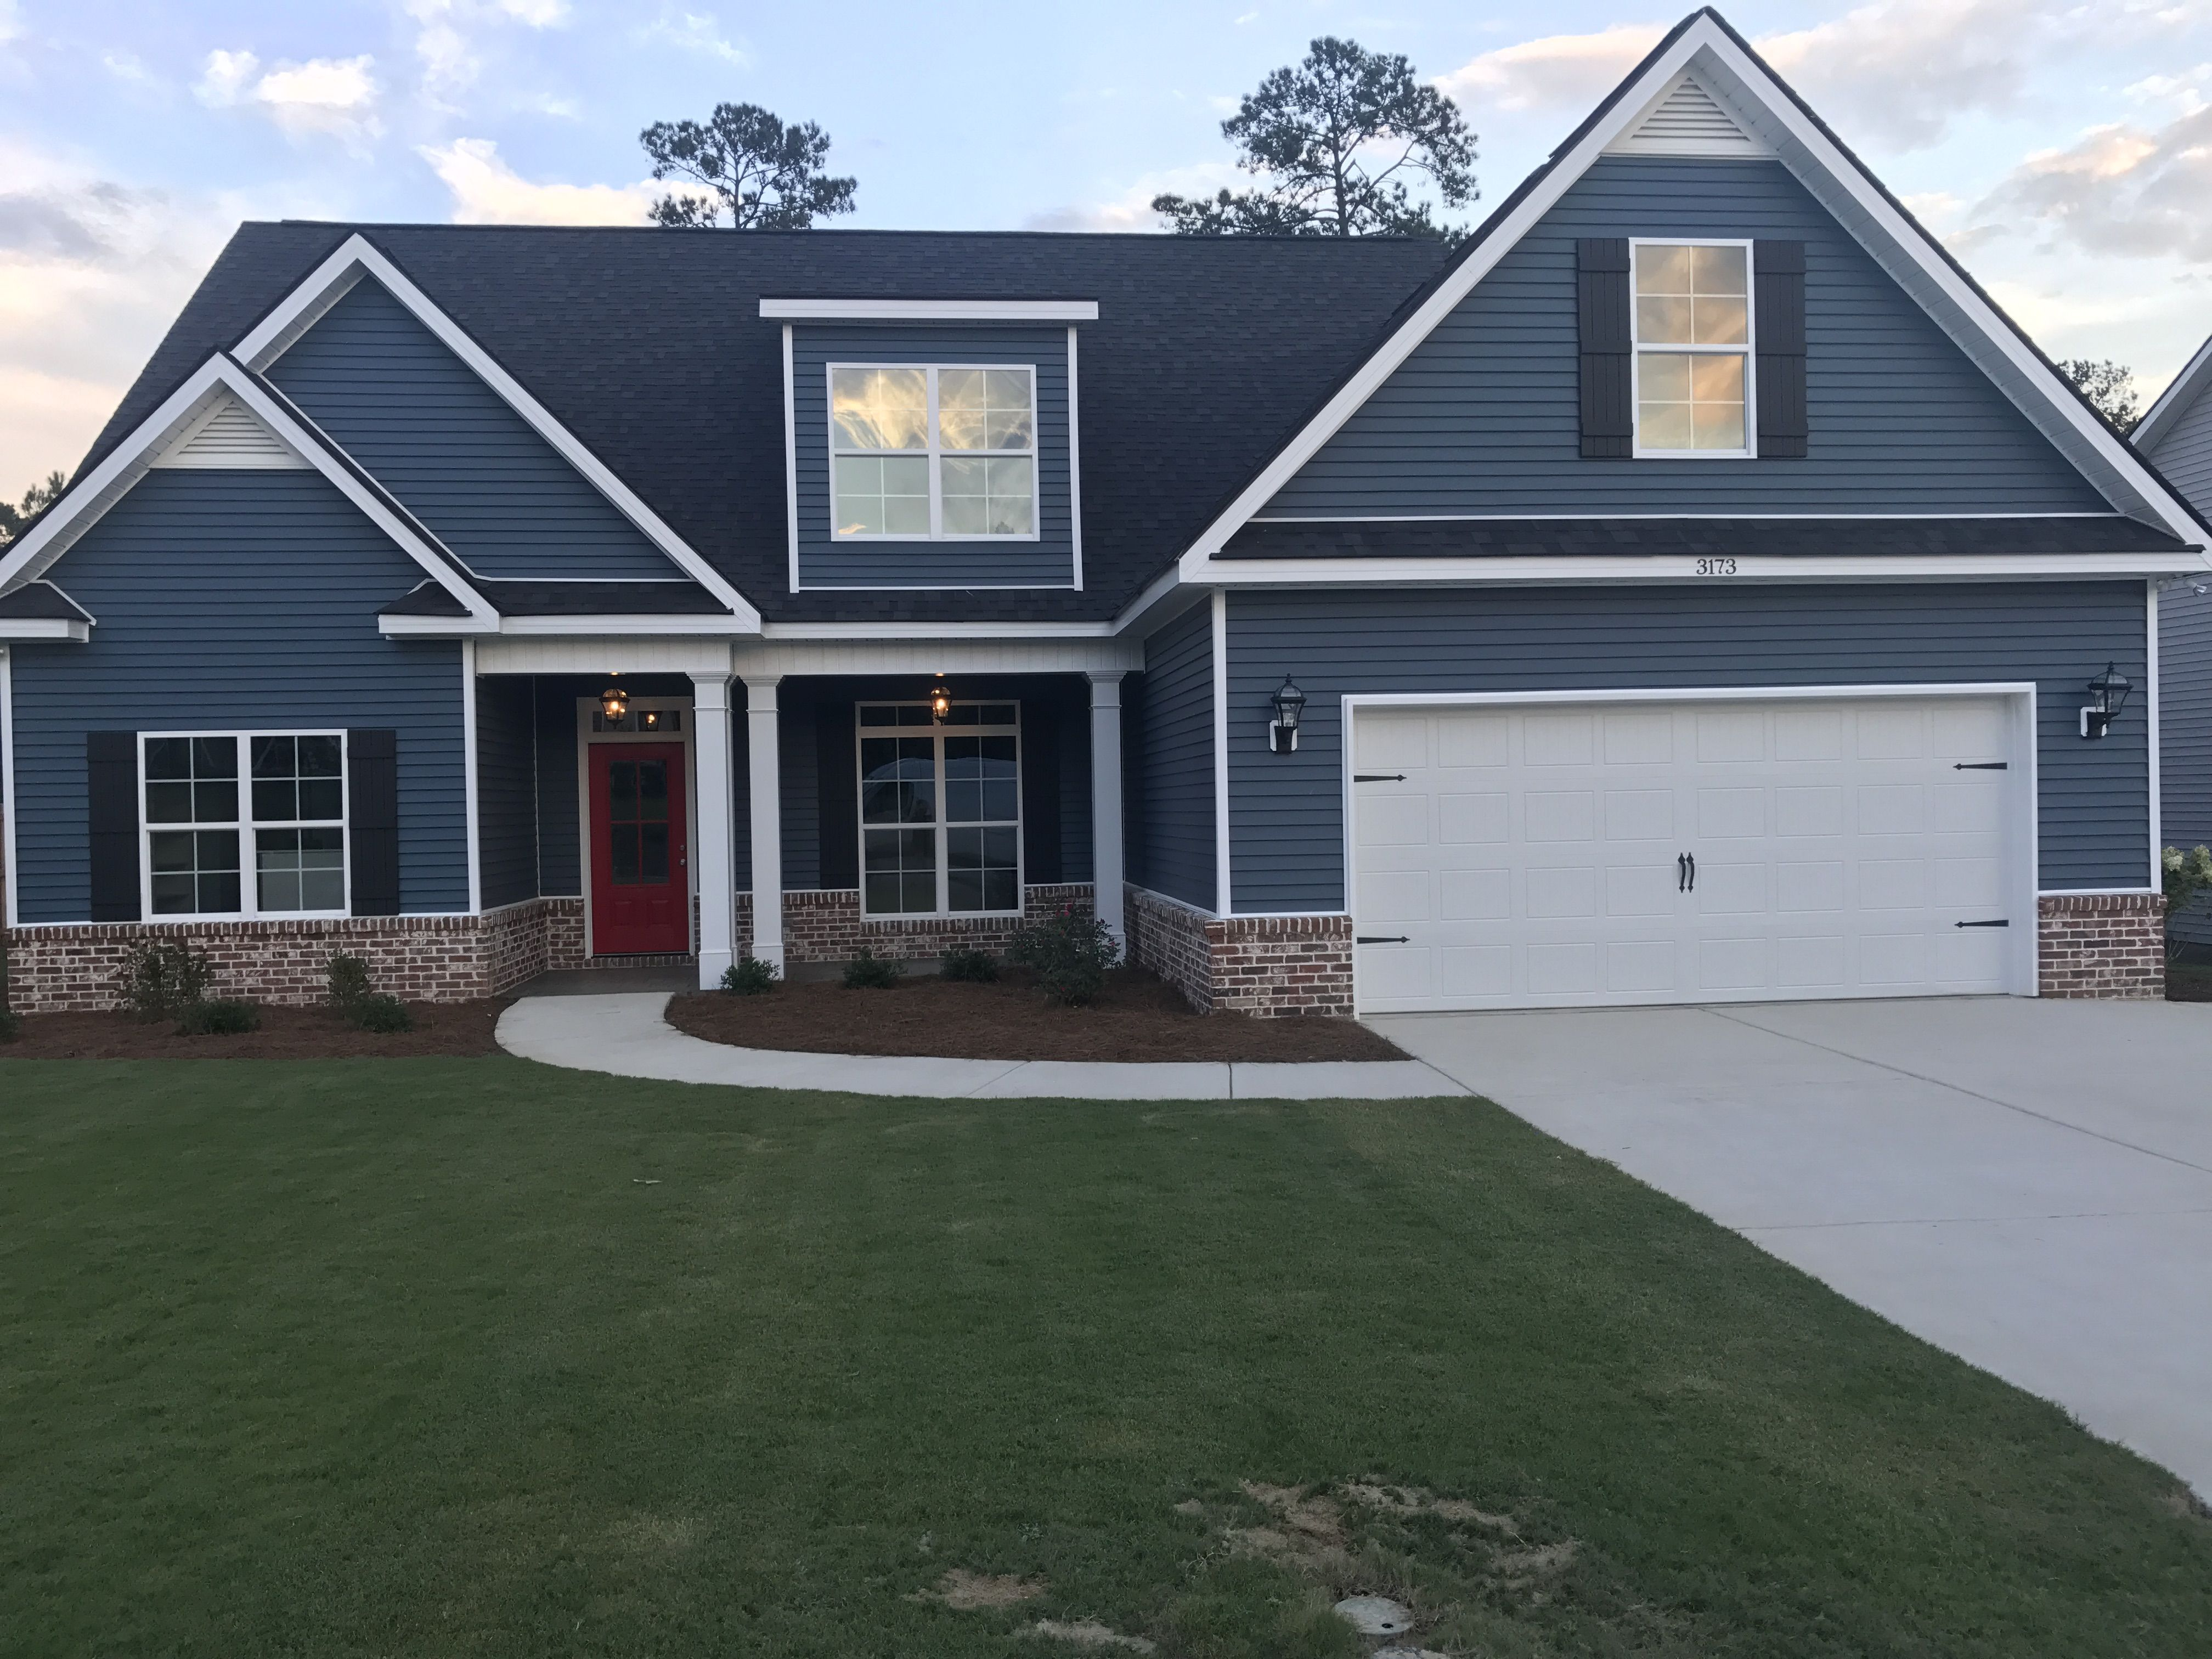 Our Blue House With A Red Door Our House Pinterest Doors And